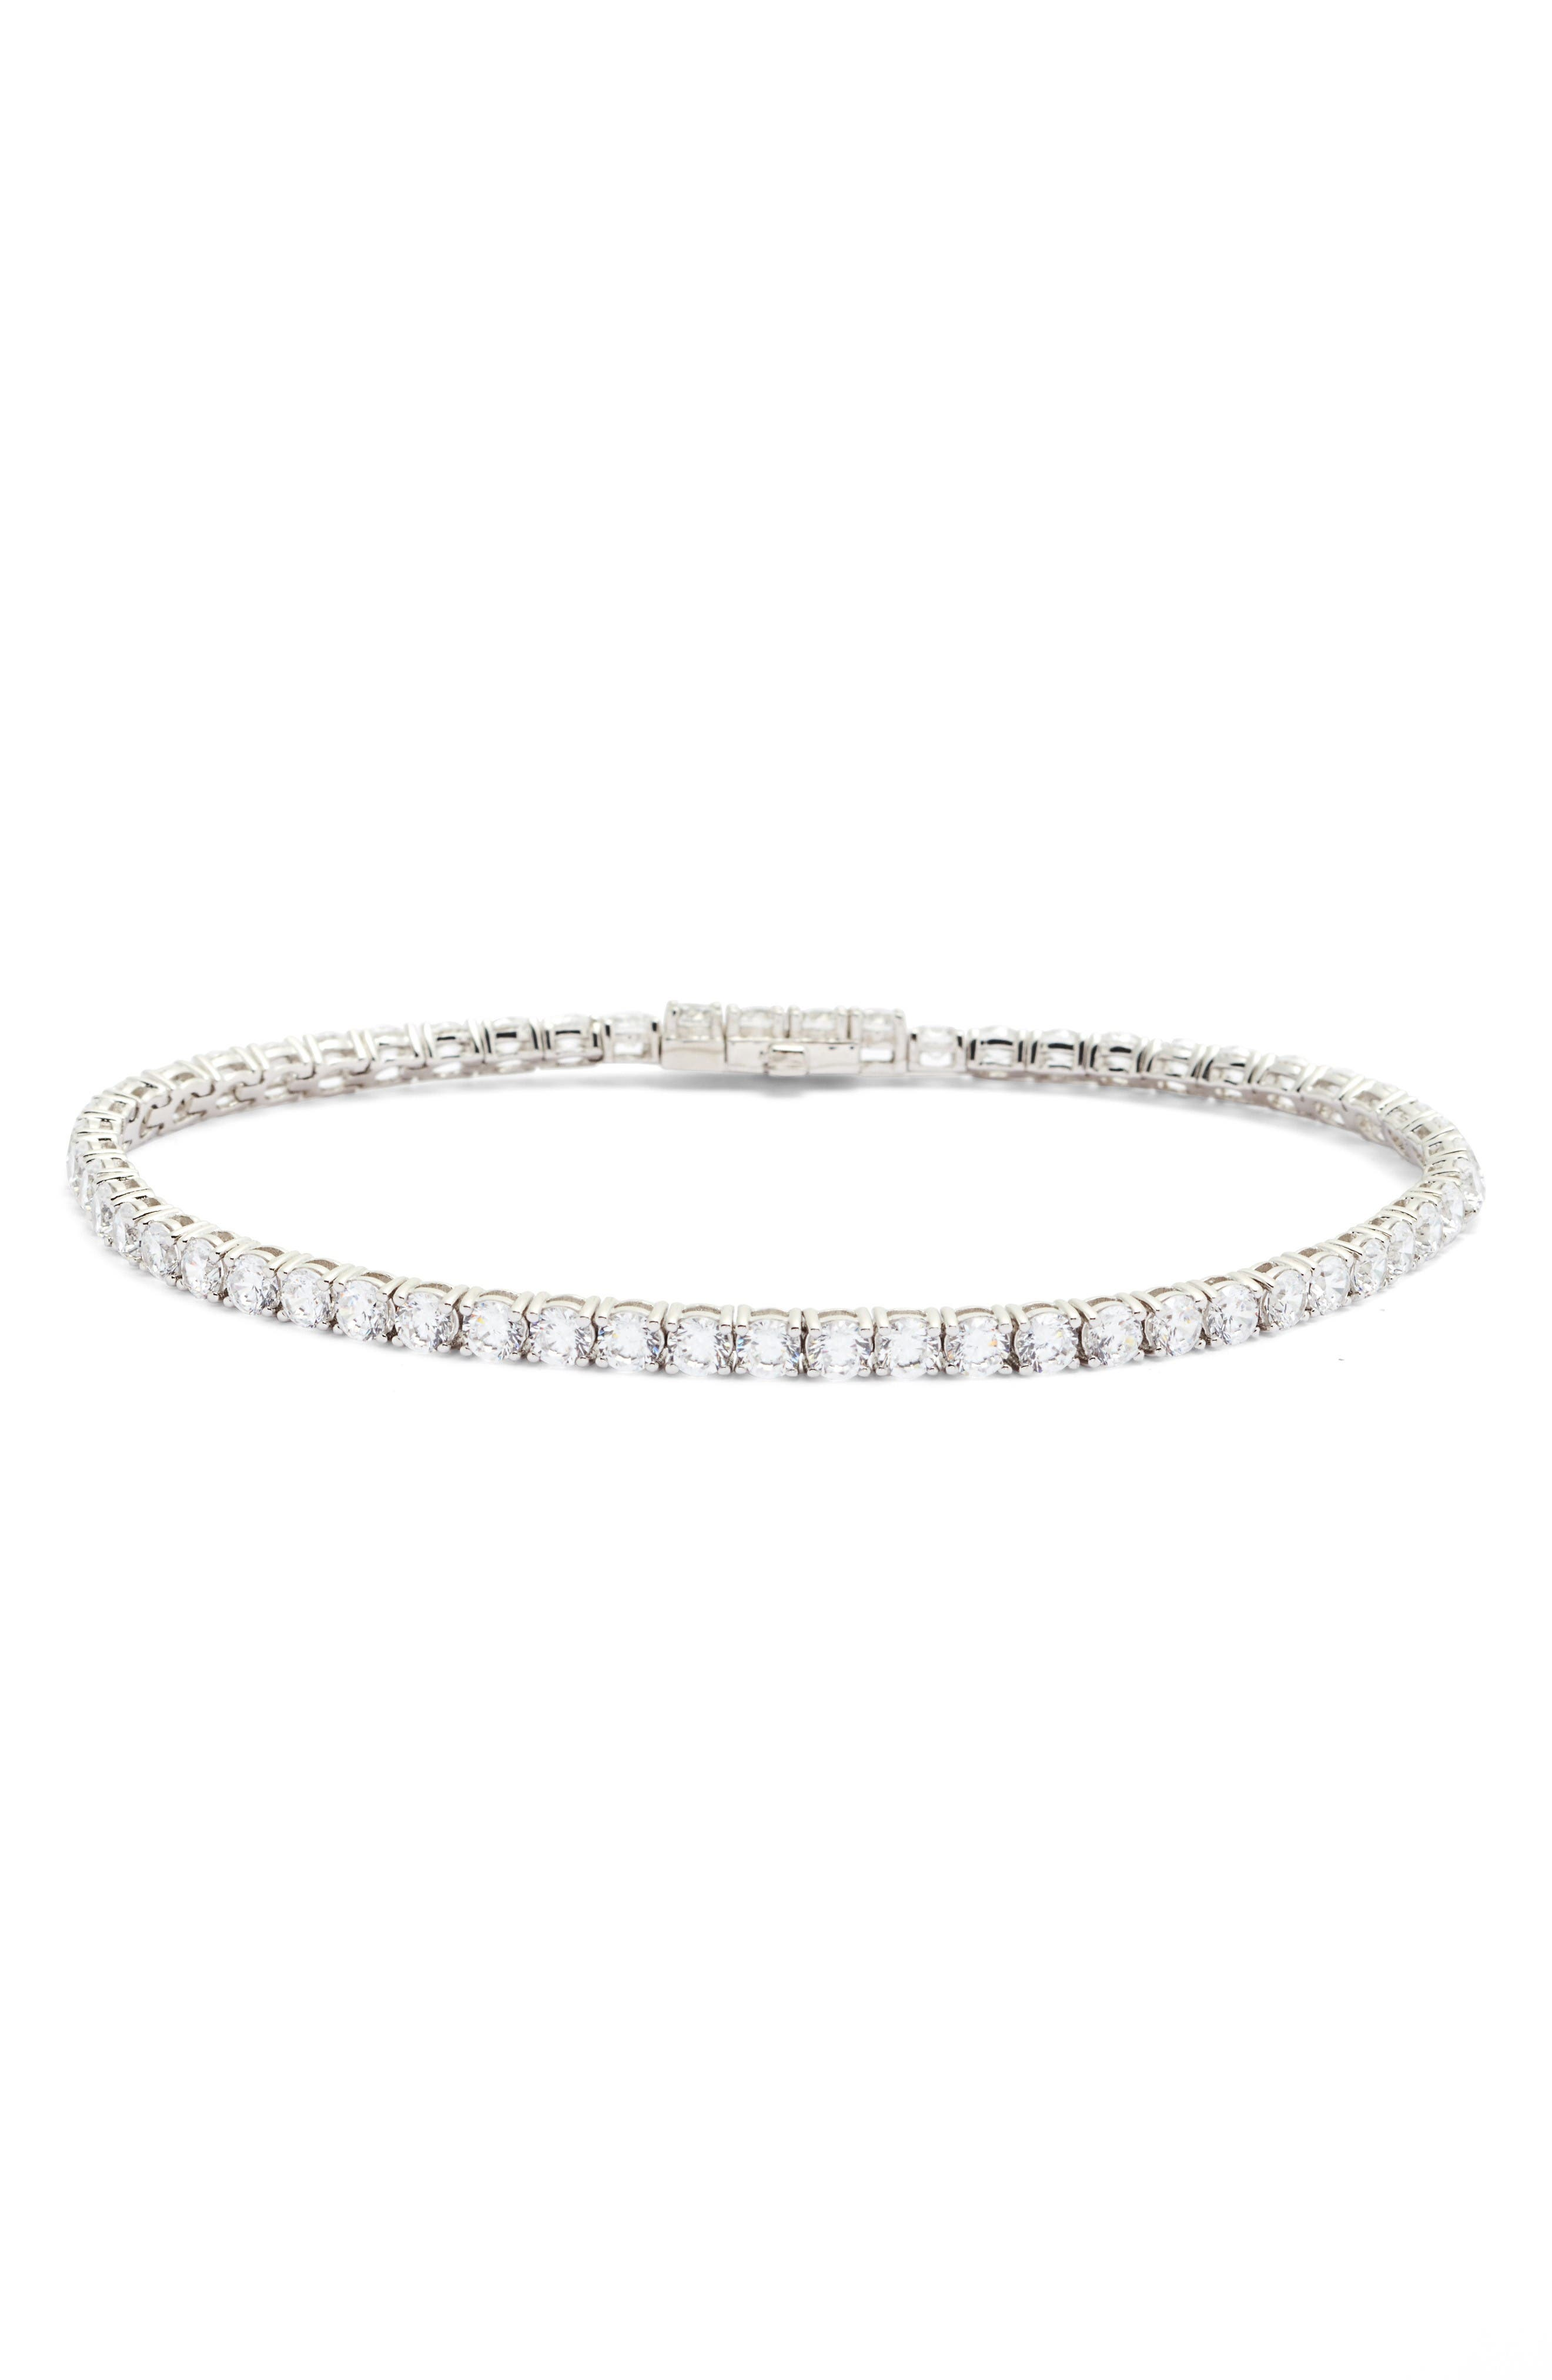 Alternate Image 1 Selected - Lafonn Classic Simulated Diamond Tennis Bracelet